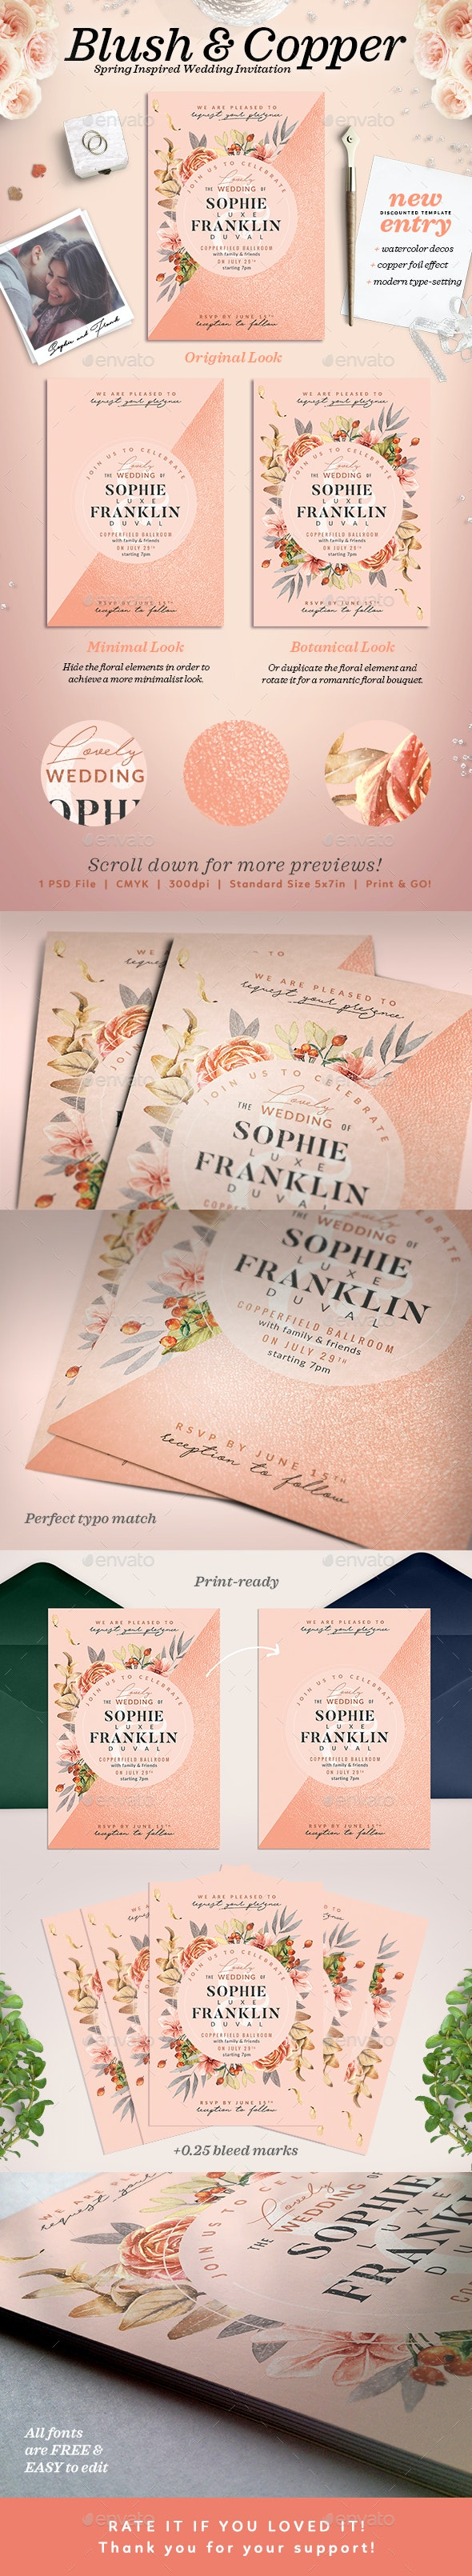 Blush Copper Wedding Invitation I - Wedding Greeting Cards